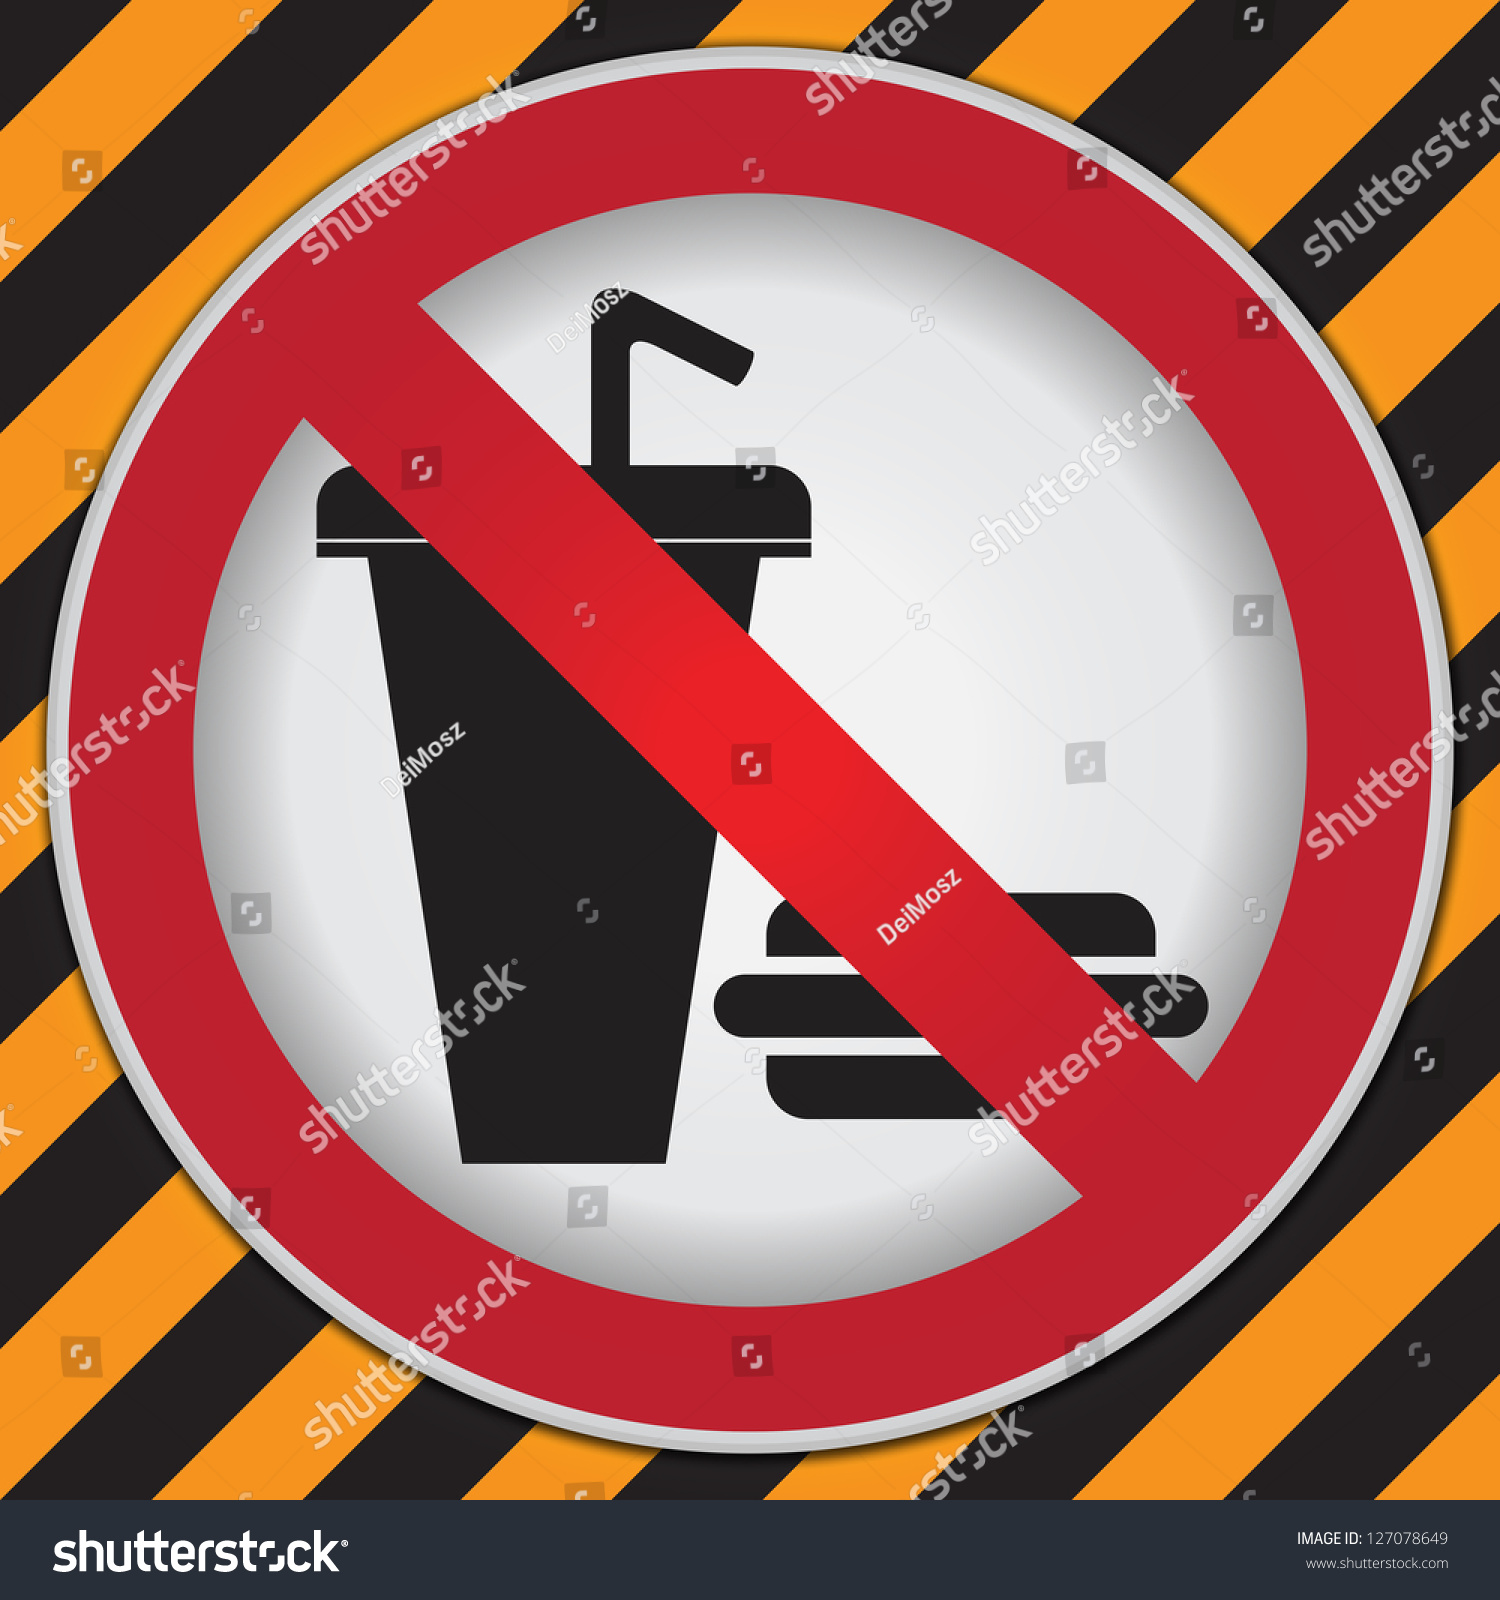 Что такое eating prohibitted 4 фотография